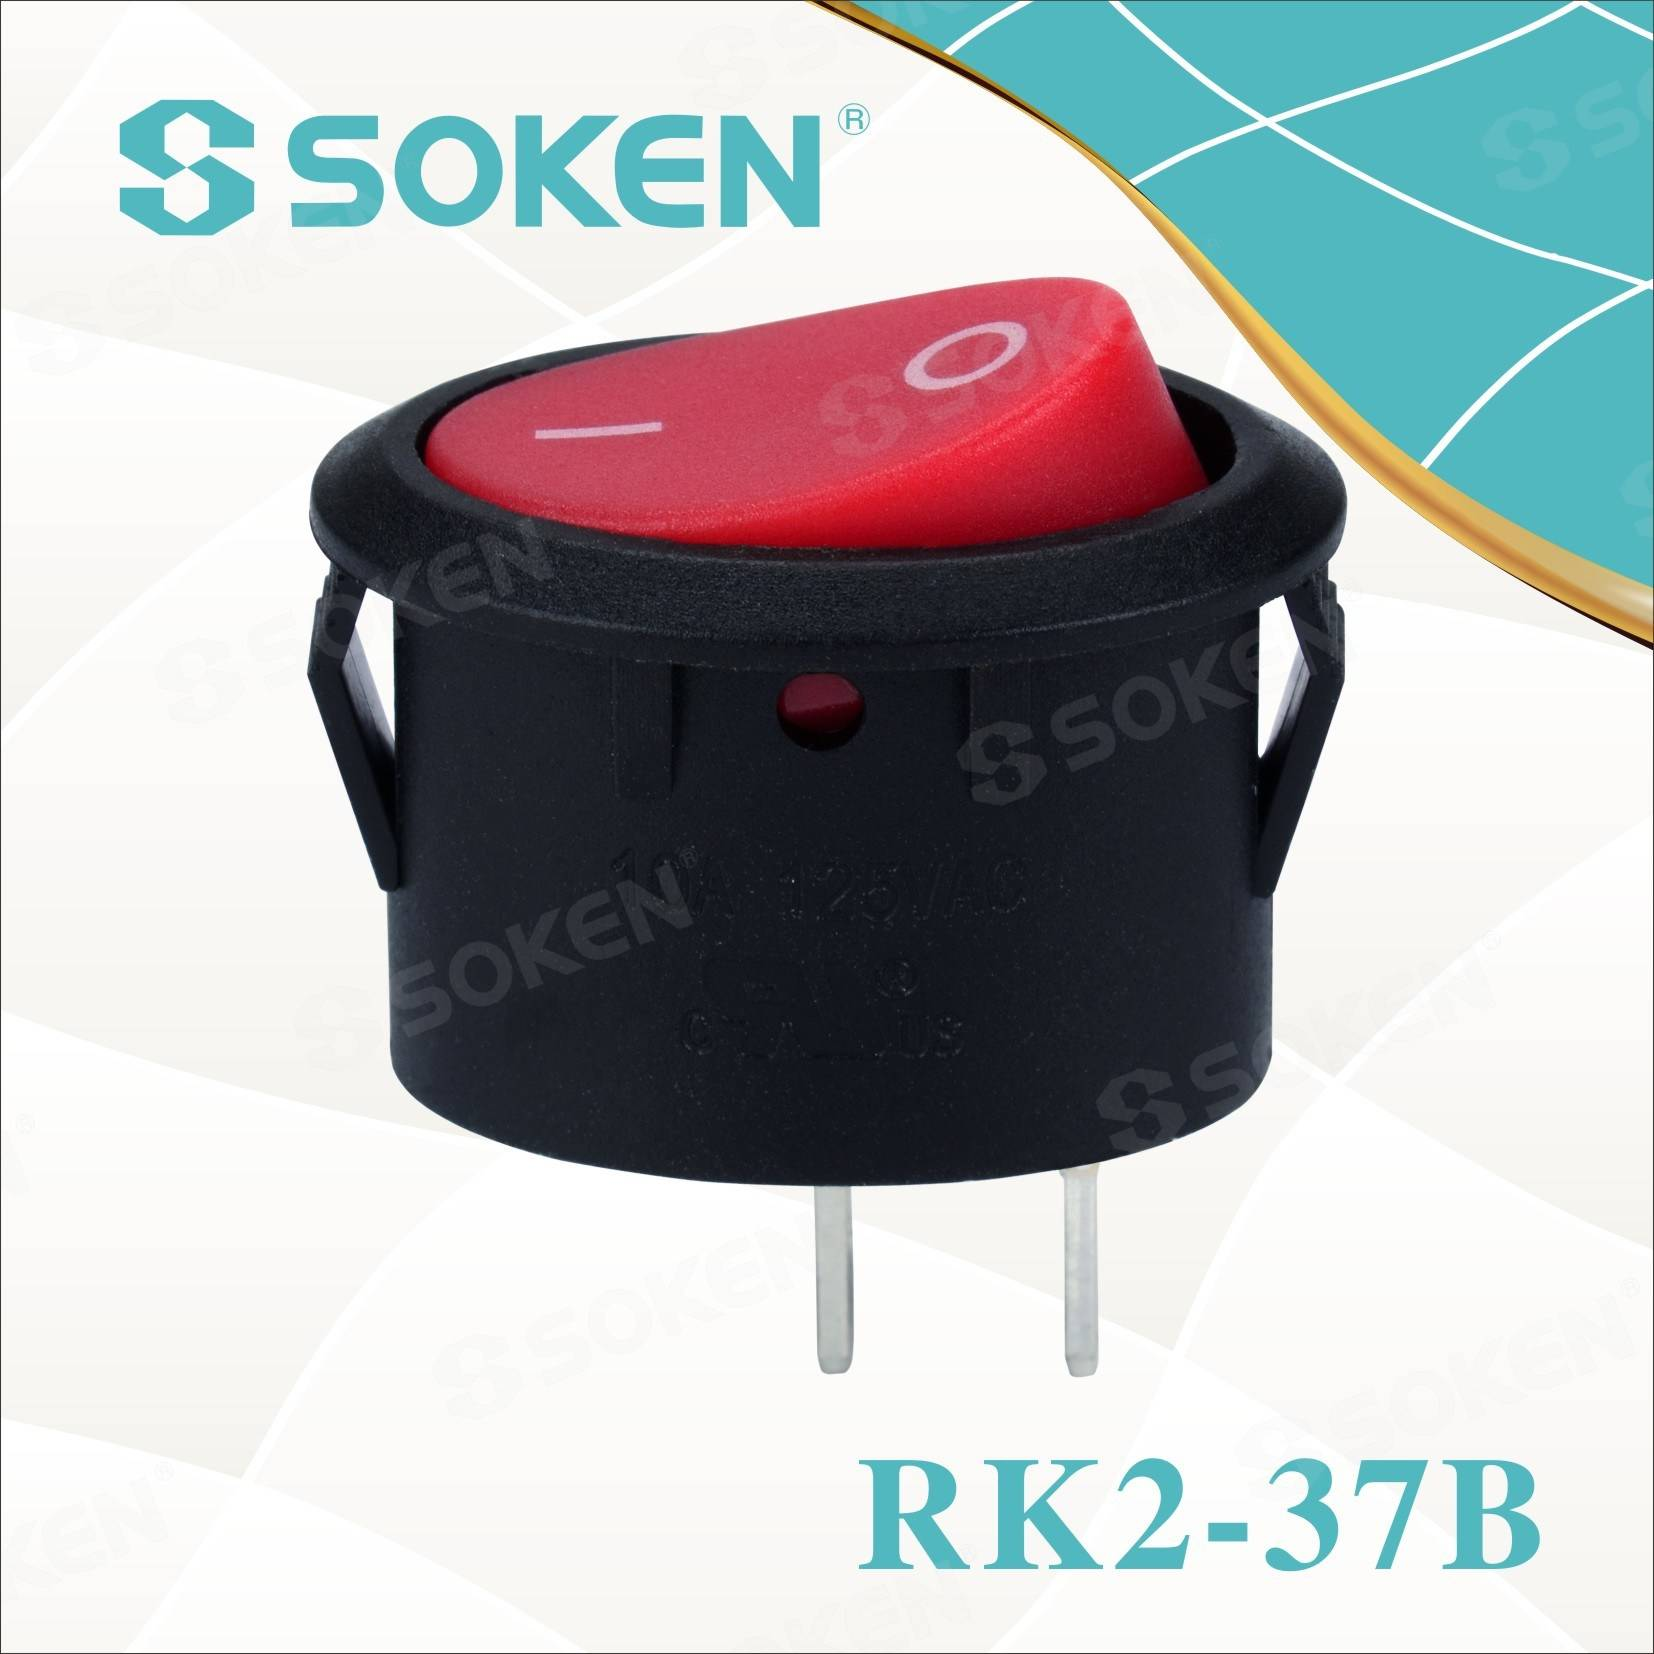 Ovalni Rocker Switch Rk2-37b